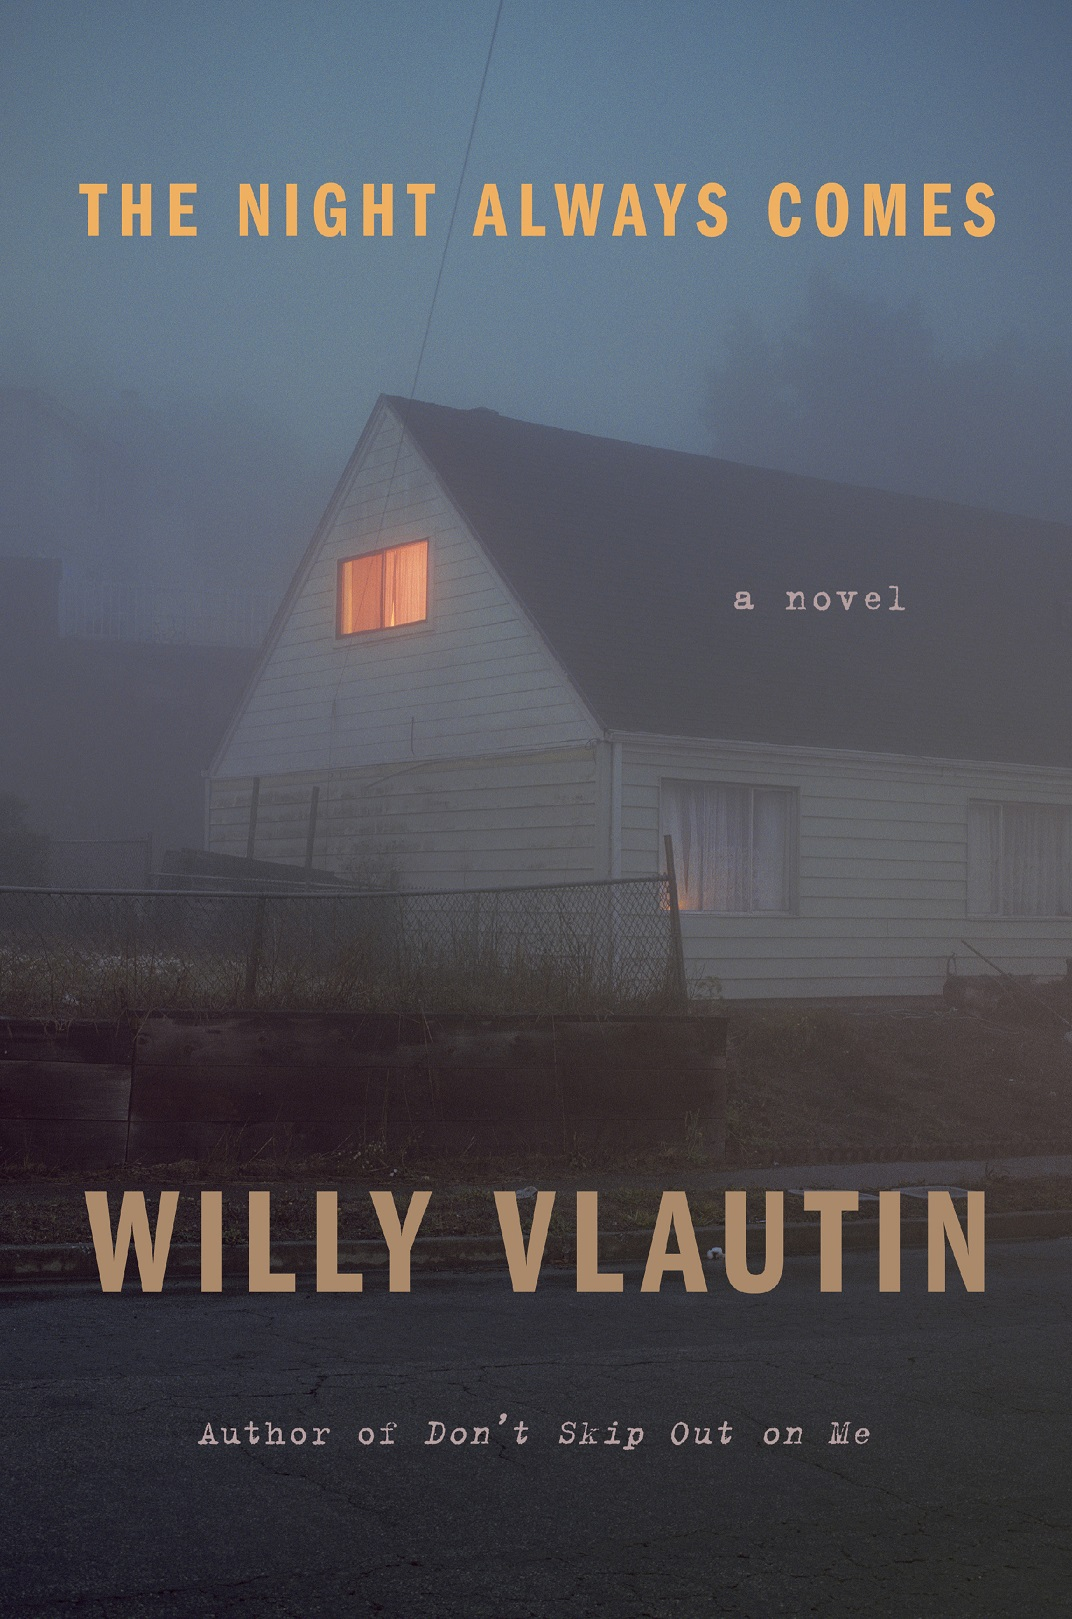 Virtual Book Launch: The Night Always Comes by Willy Vlautin in conversation with Franz Nicolay